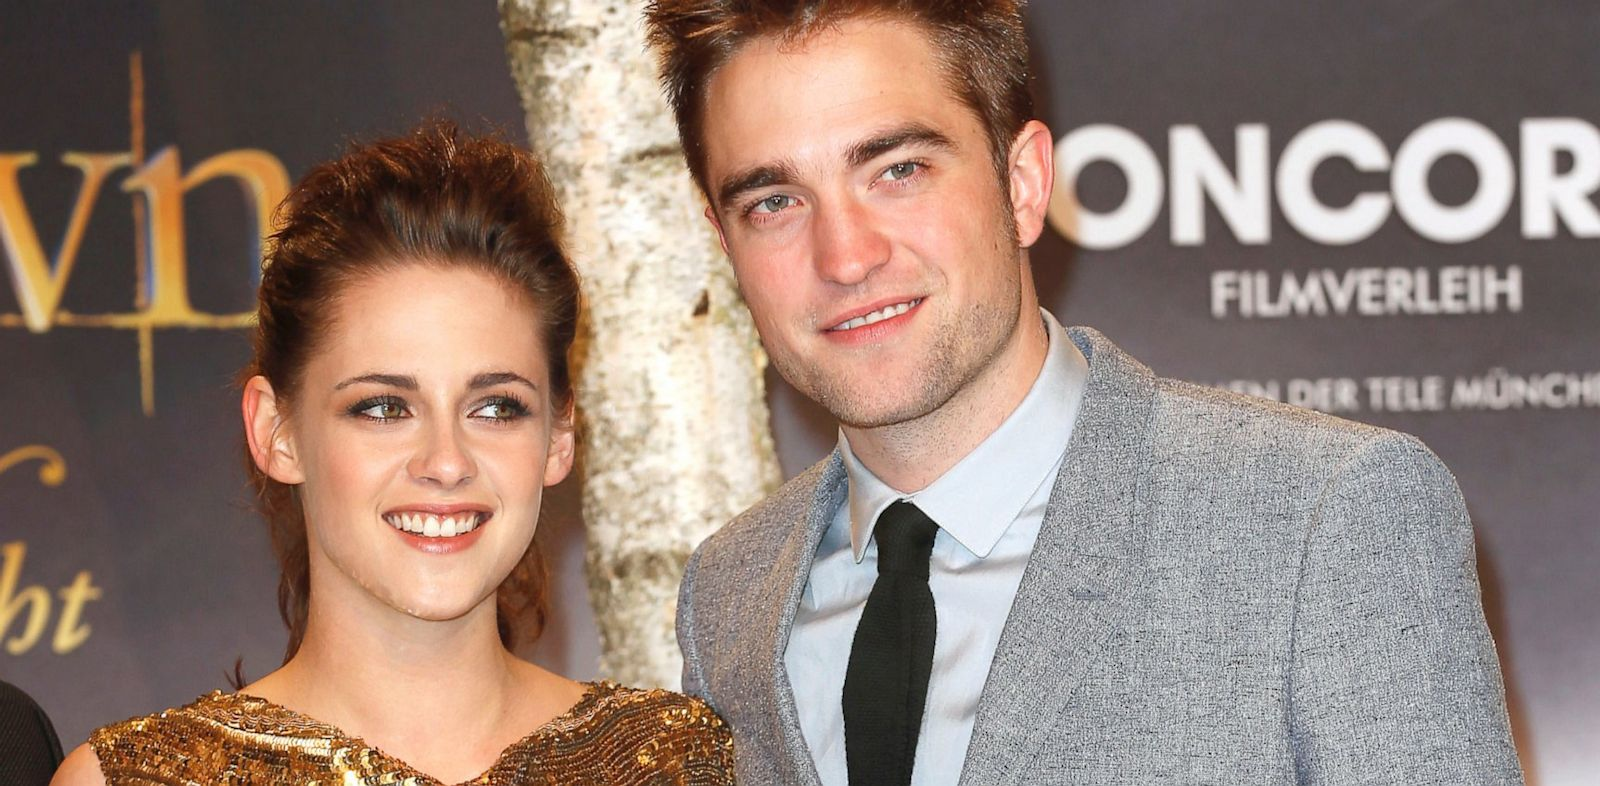 PHOTO: Kristen Stewart and Robert Pattinson